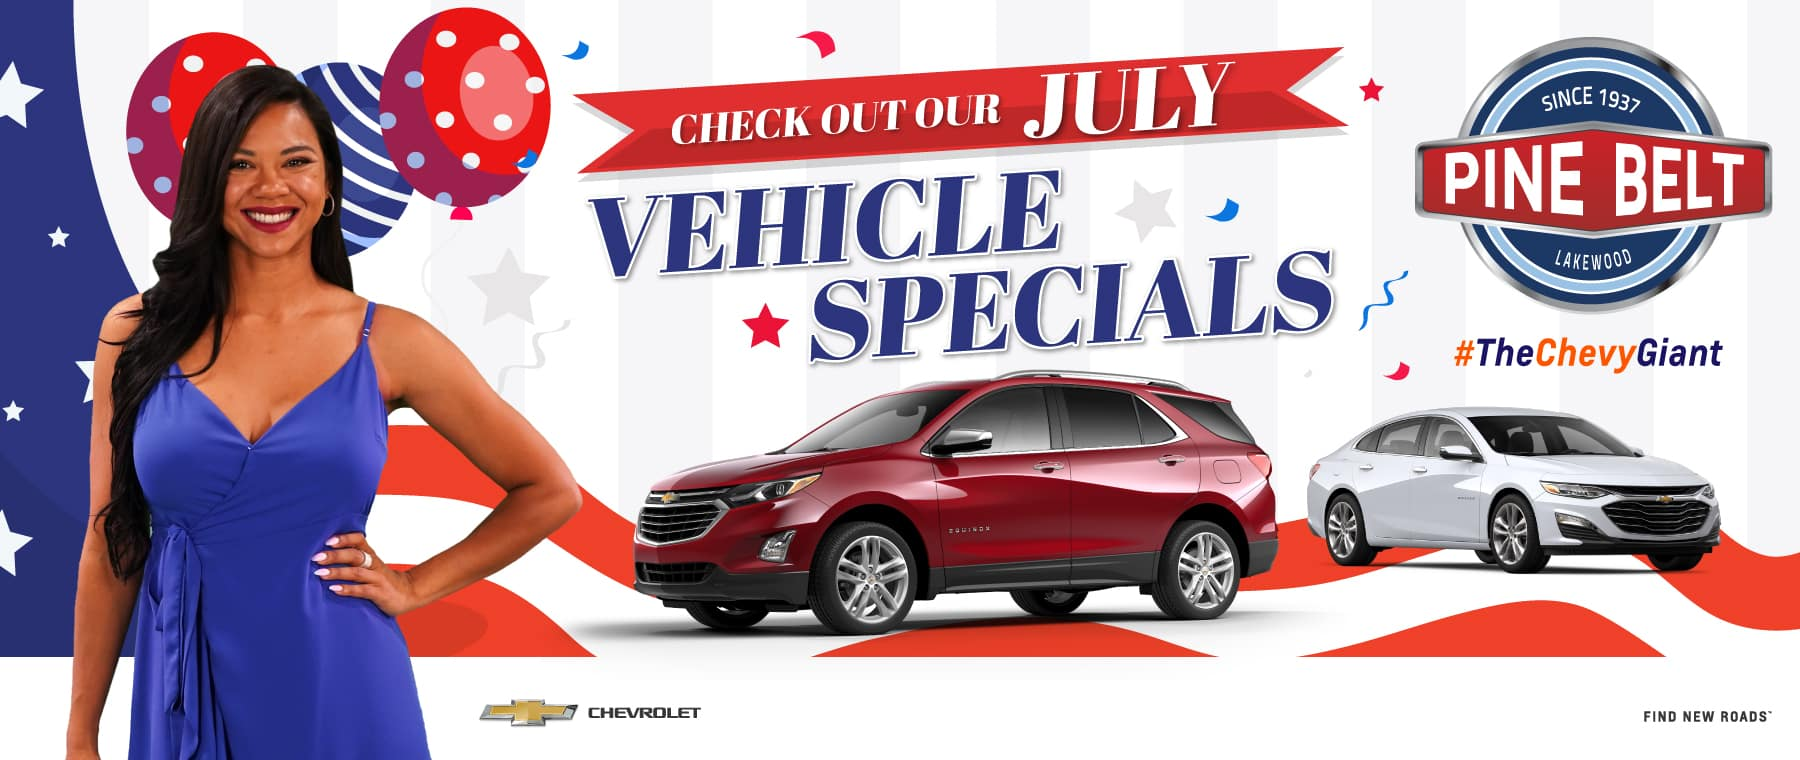 PBE-0000-July-Monthly-Specials_CHEVY (1)